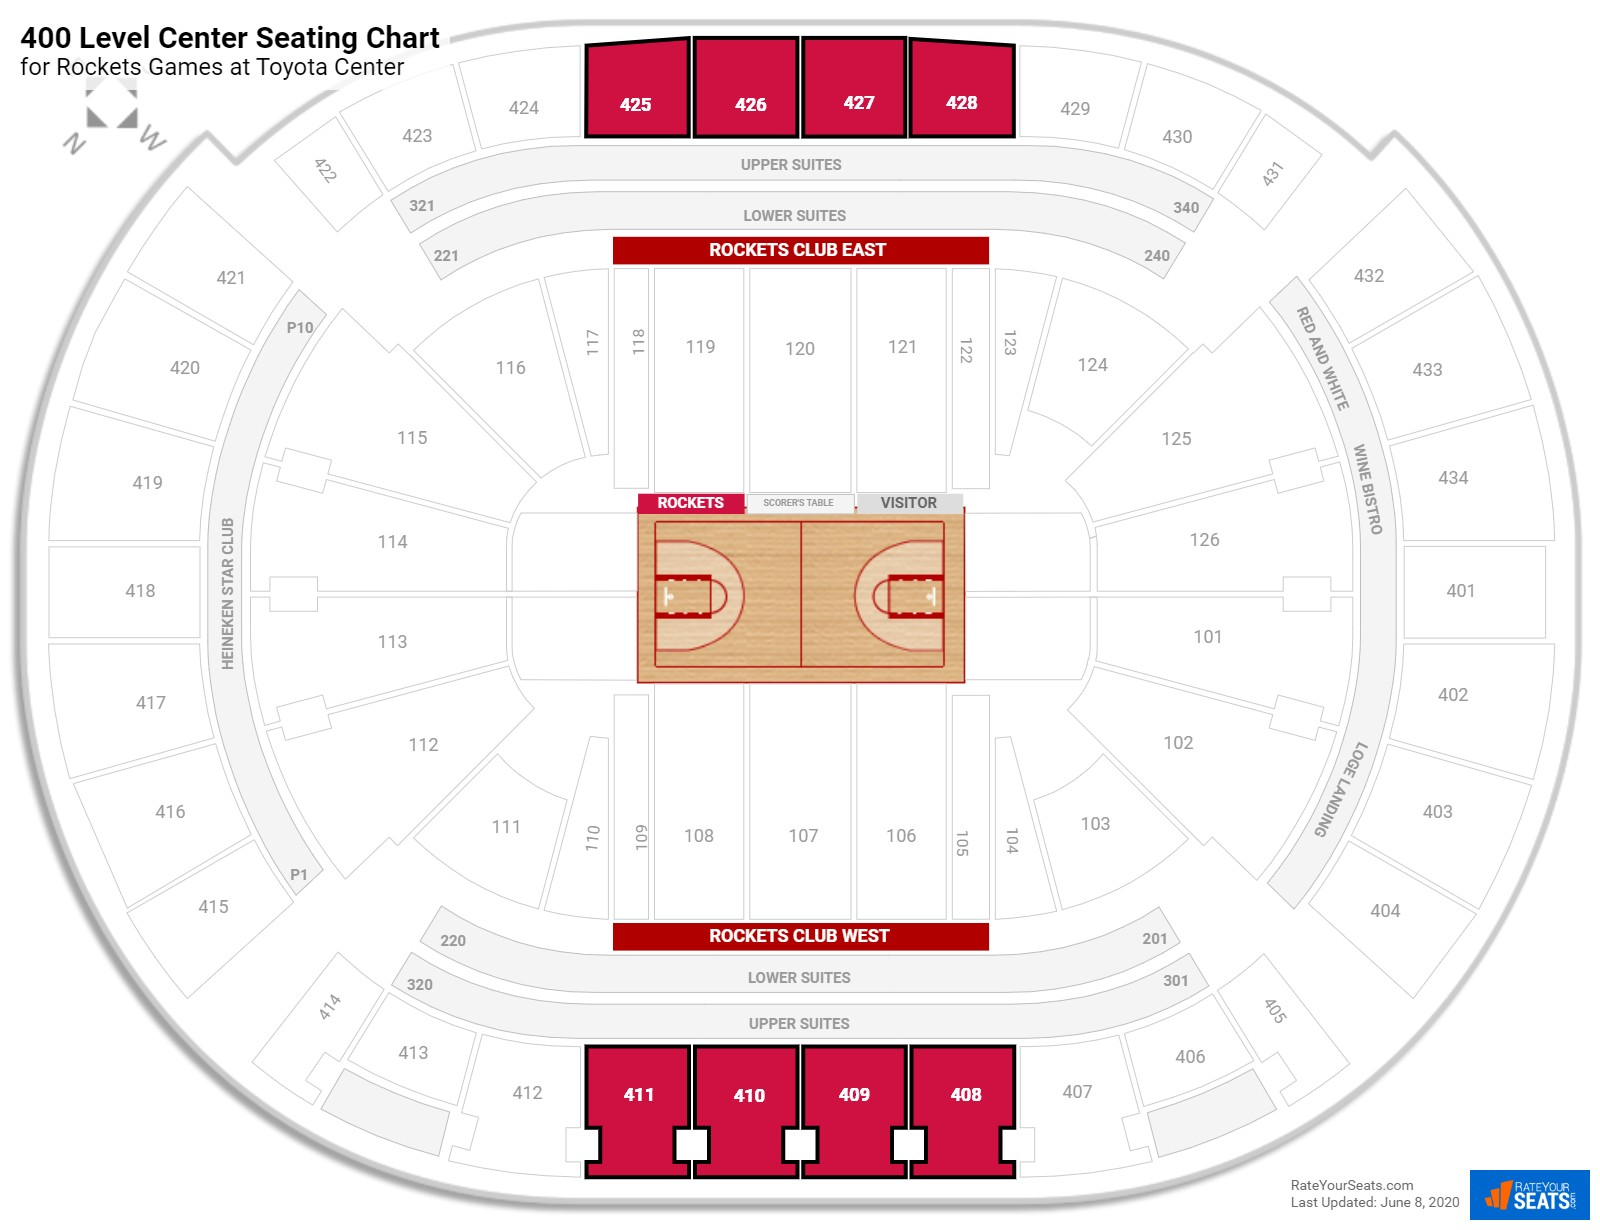 Toyota Center 400 Level Center seating chart